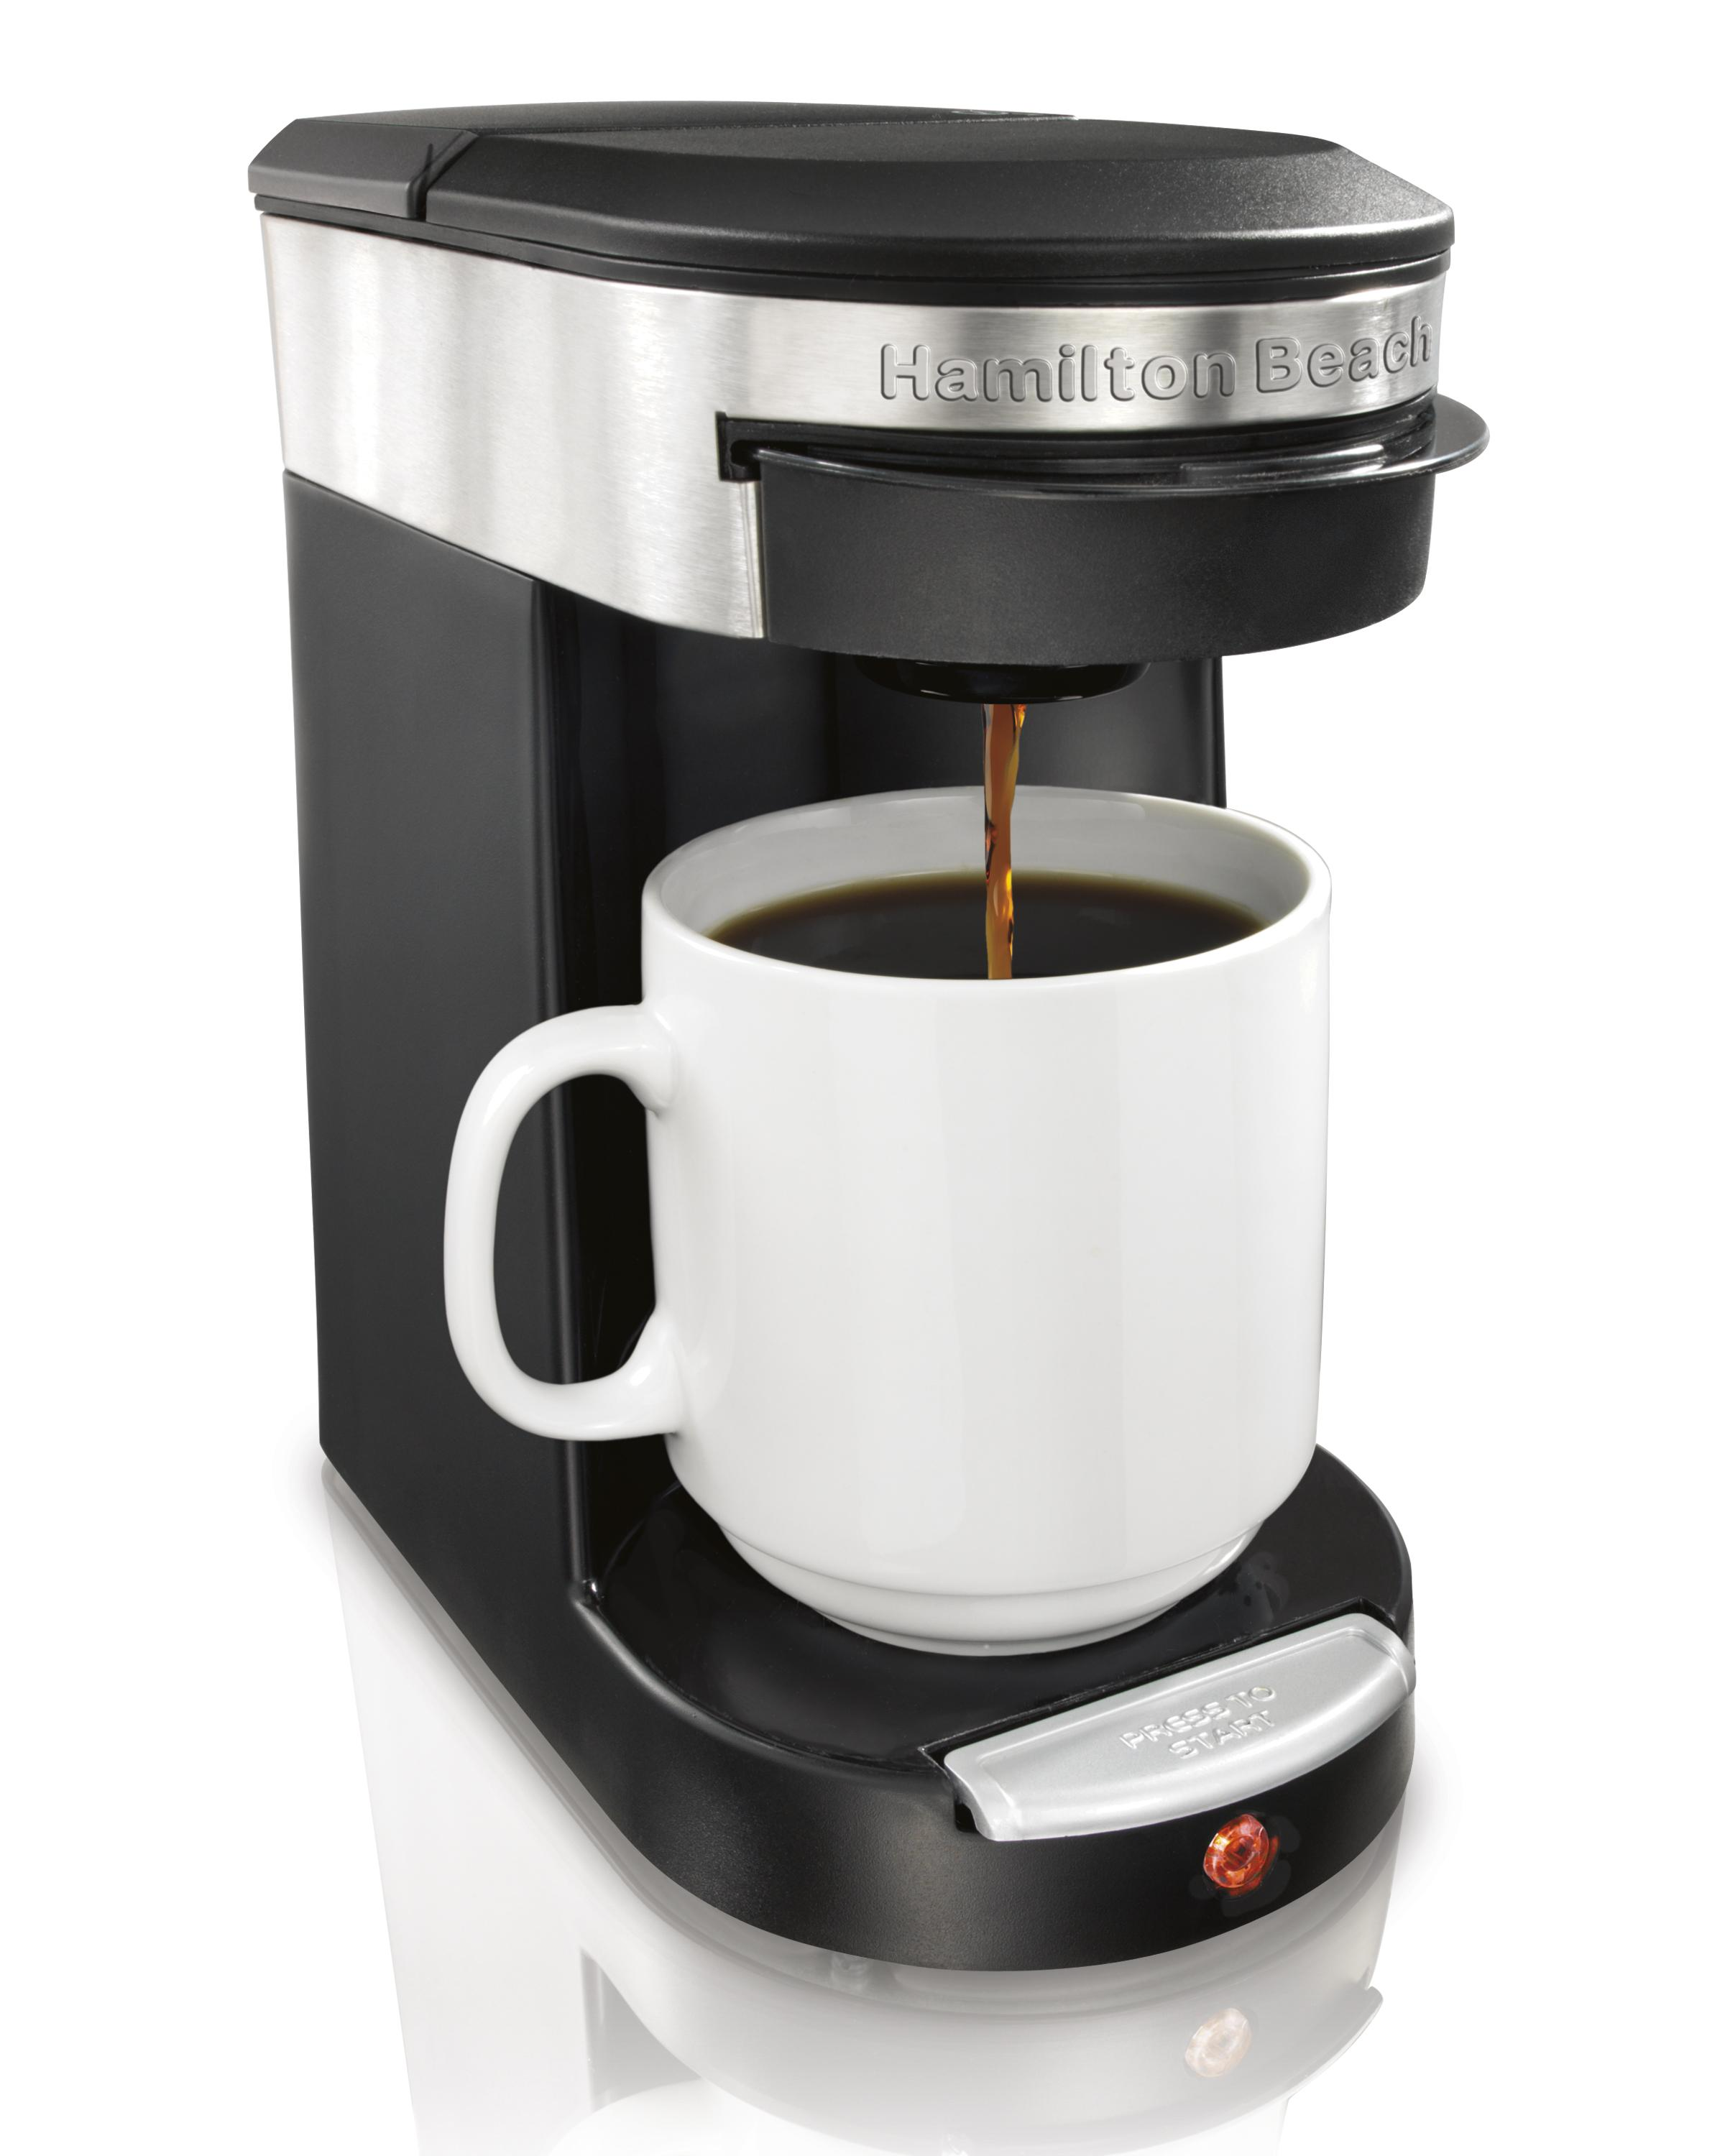 One Cup Coffee Maker K Cup : Amazon.com: Hamilton Beach 49970 Personal Cup One Cup Pod Brewer: Kitchen & Dining